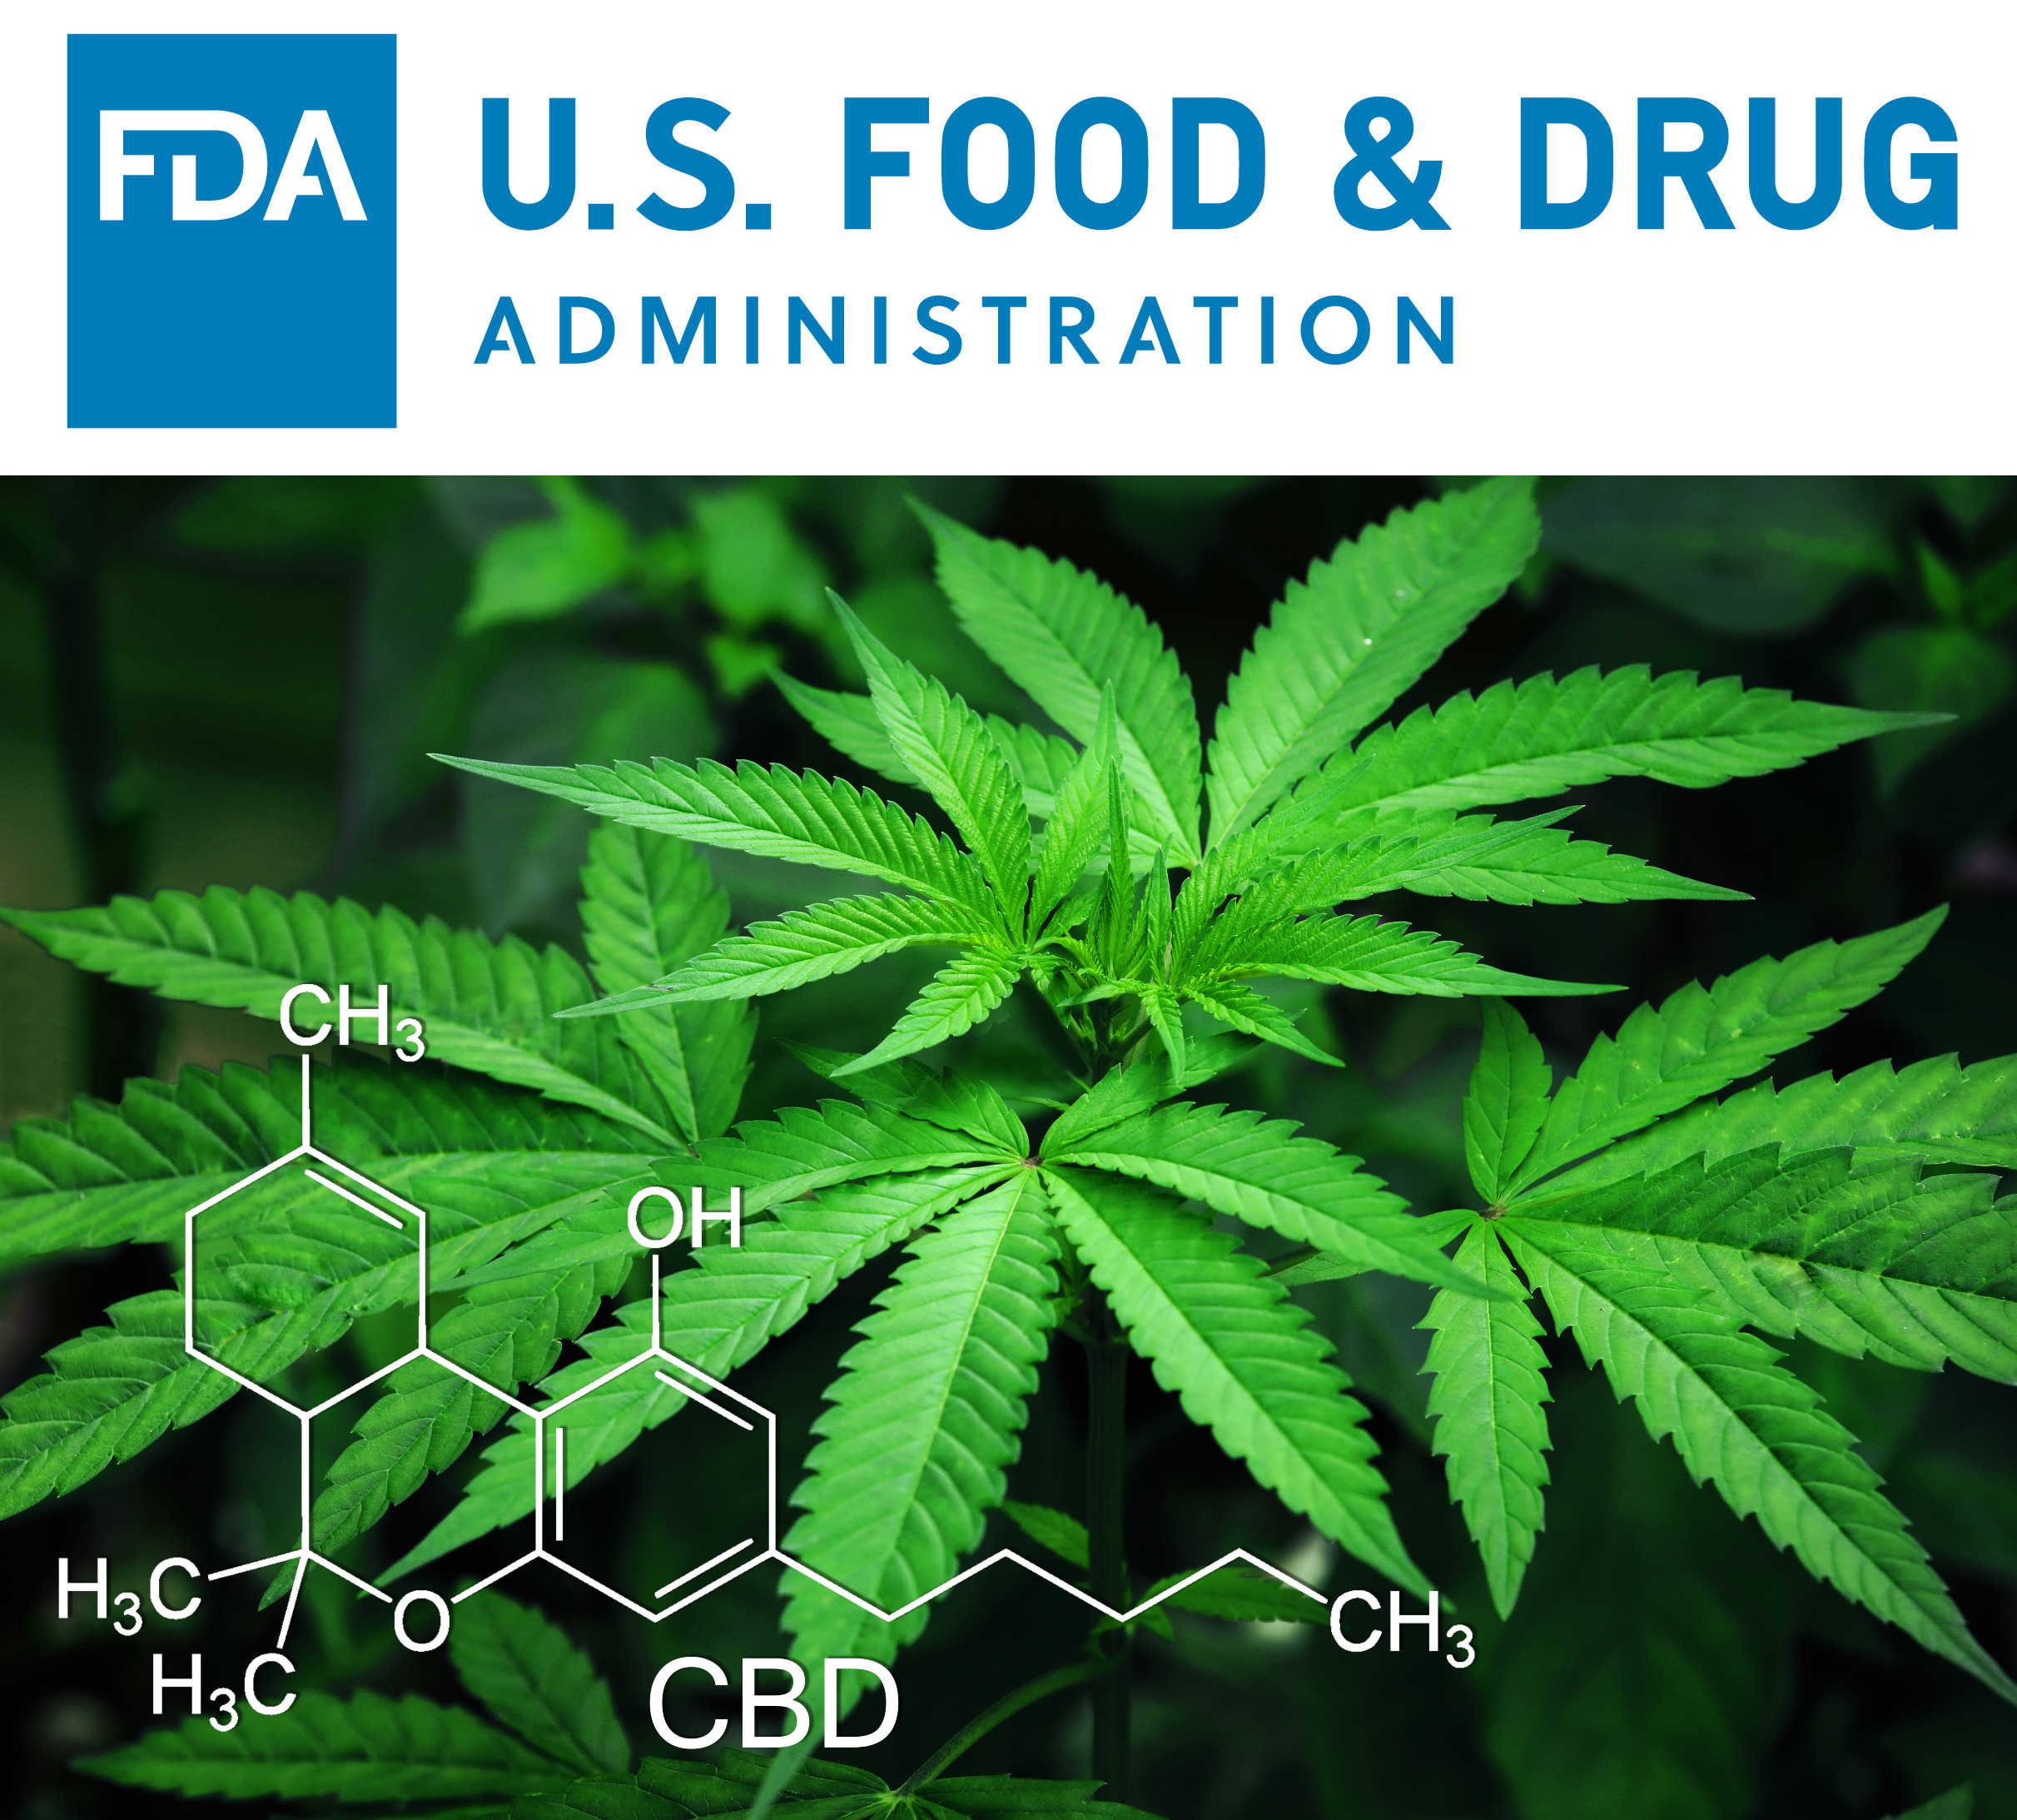 (Top) FDA logo. (Bottom) Hemp plant showing CBD compound.